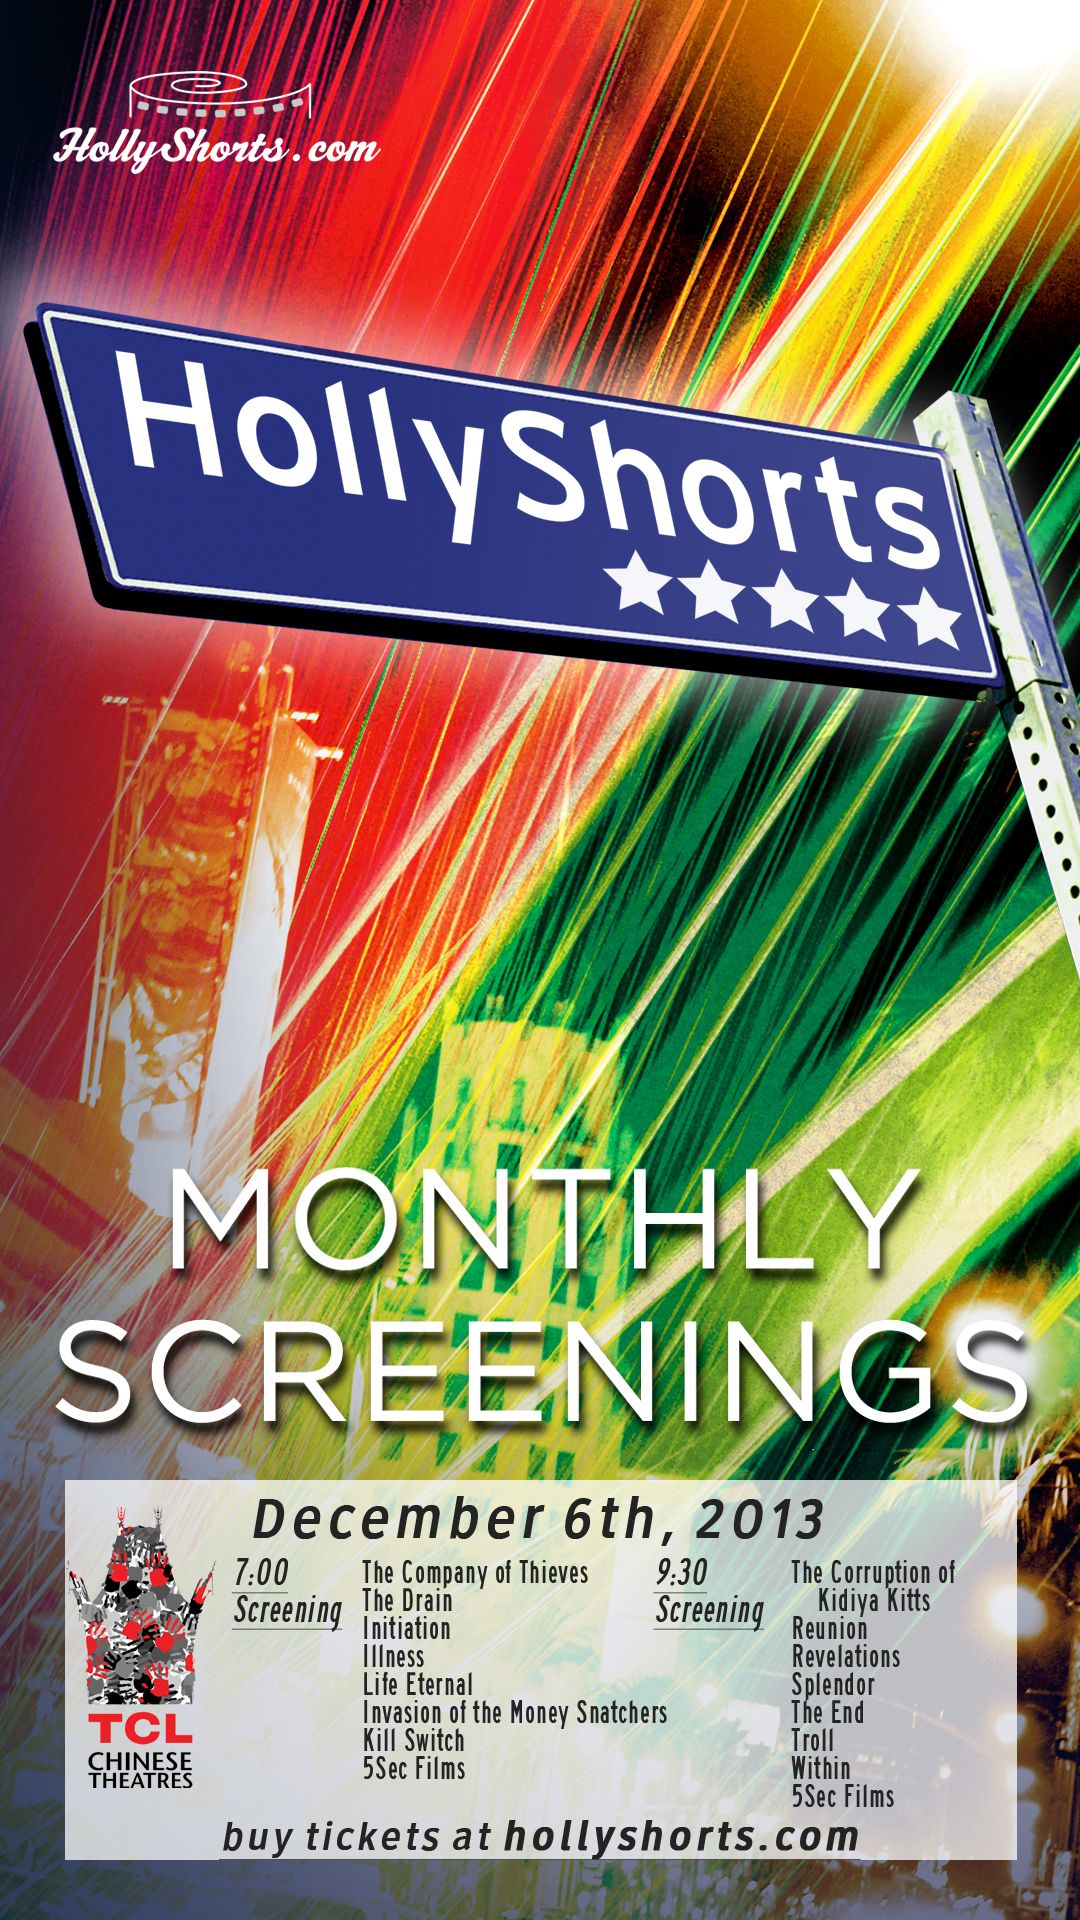 My short film   the end   was selected to screen at the famous  Chinese Theater  on Hollywood Blvd on December 6th as part of the  Hollyshorts Film Festival  screening series.   More details soon!